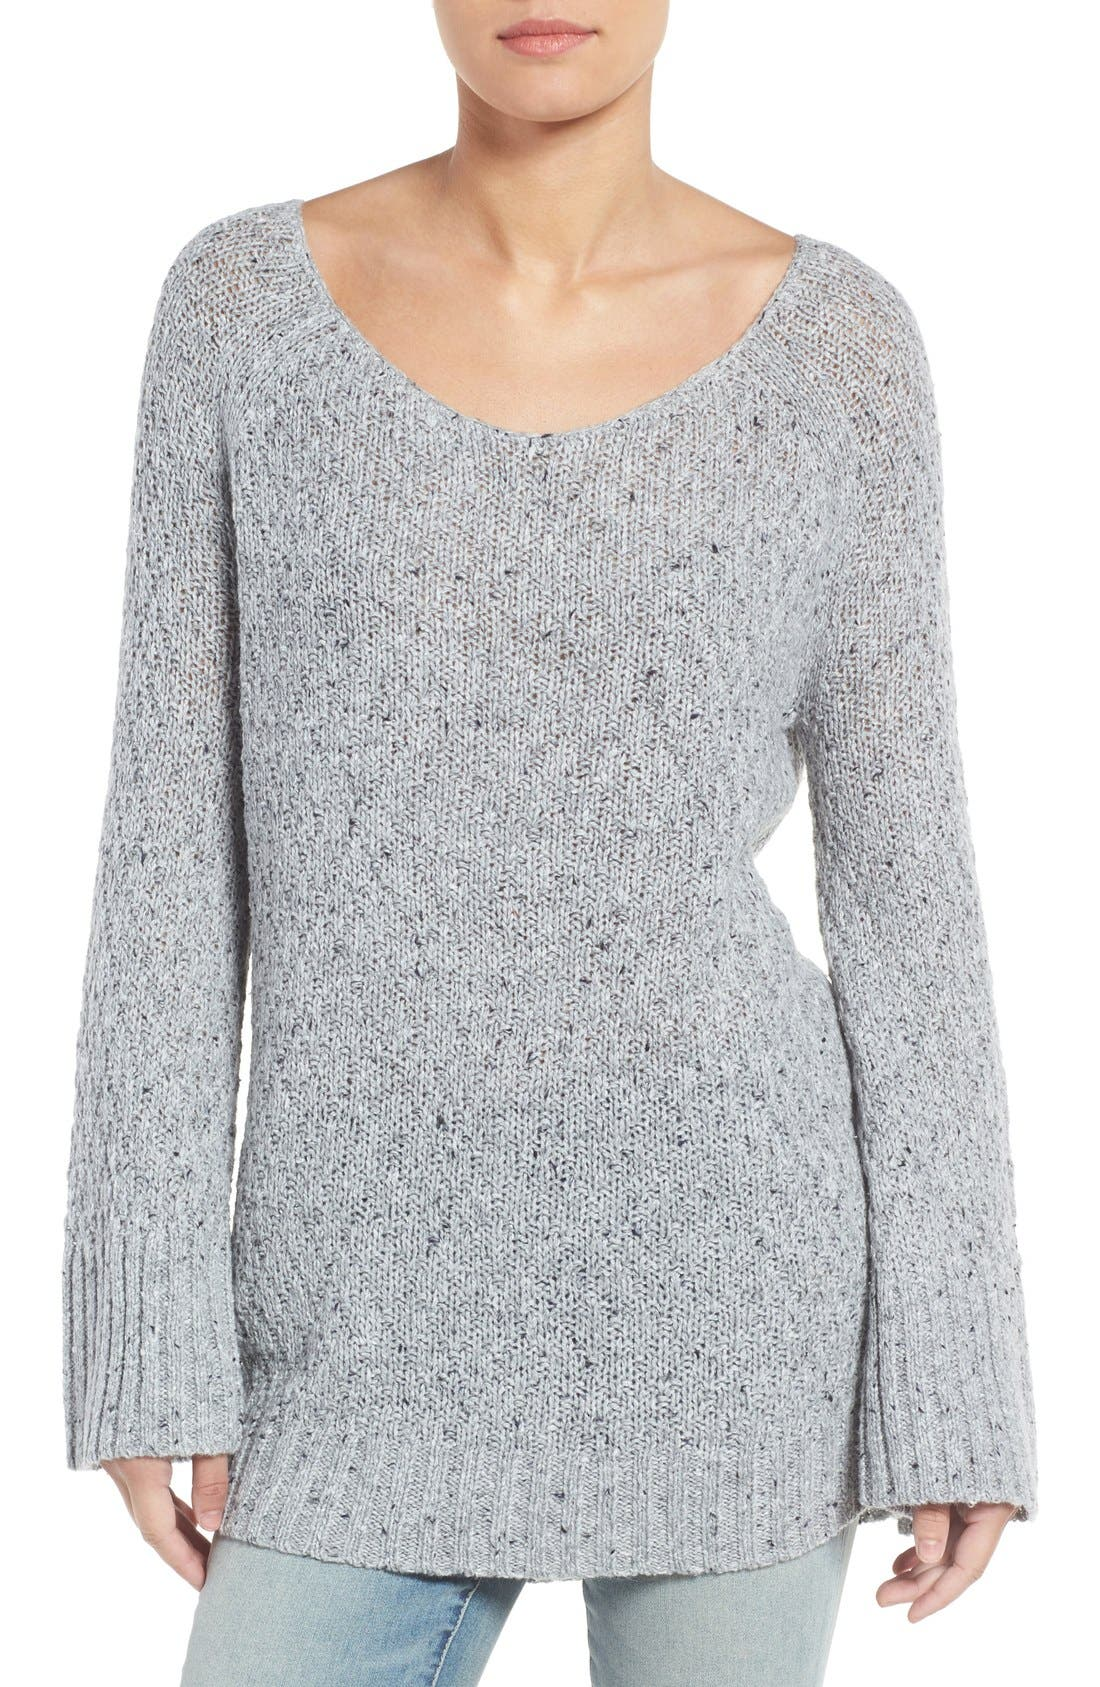 Main Image - Hinge Slouchy Tunic Sweater